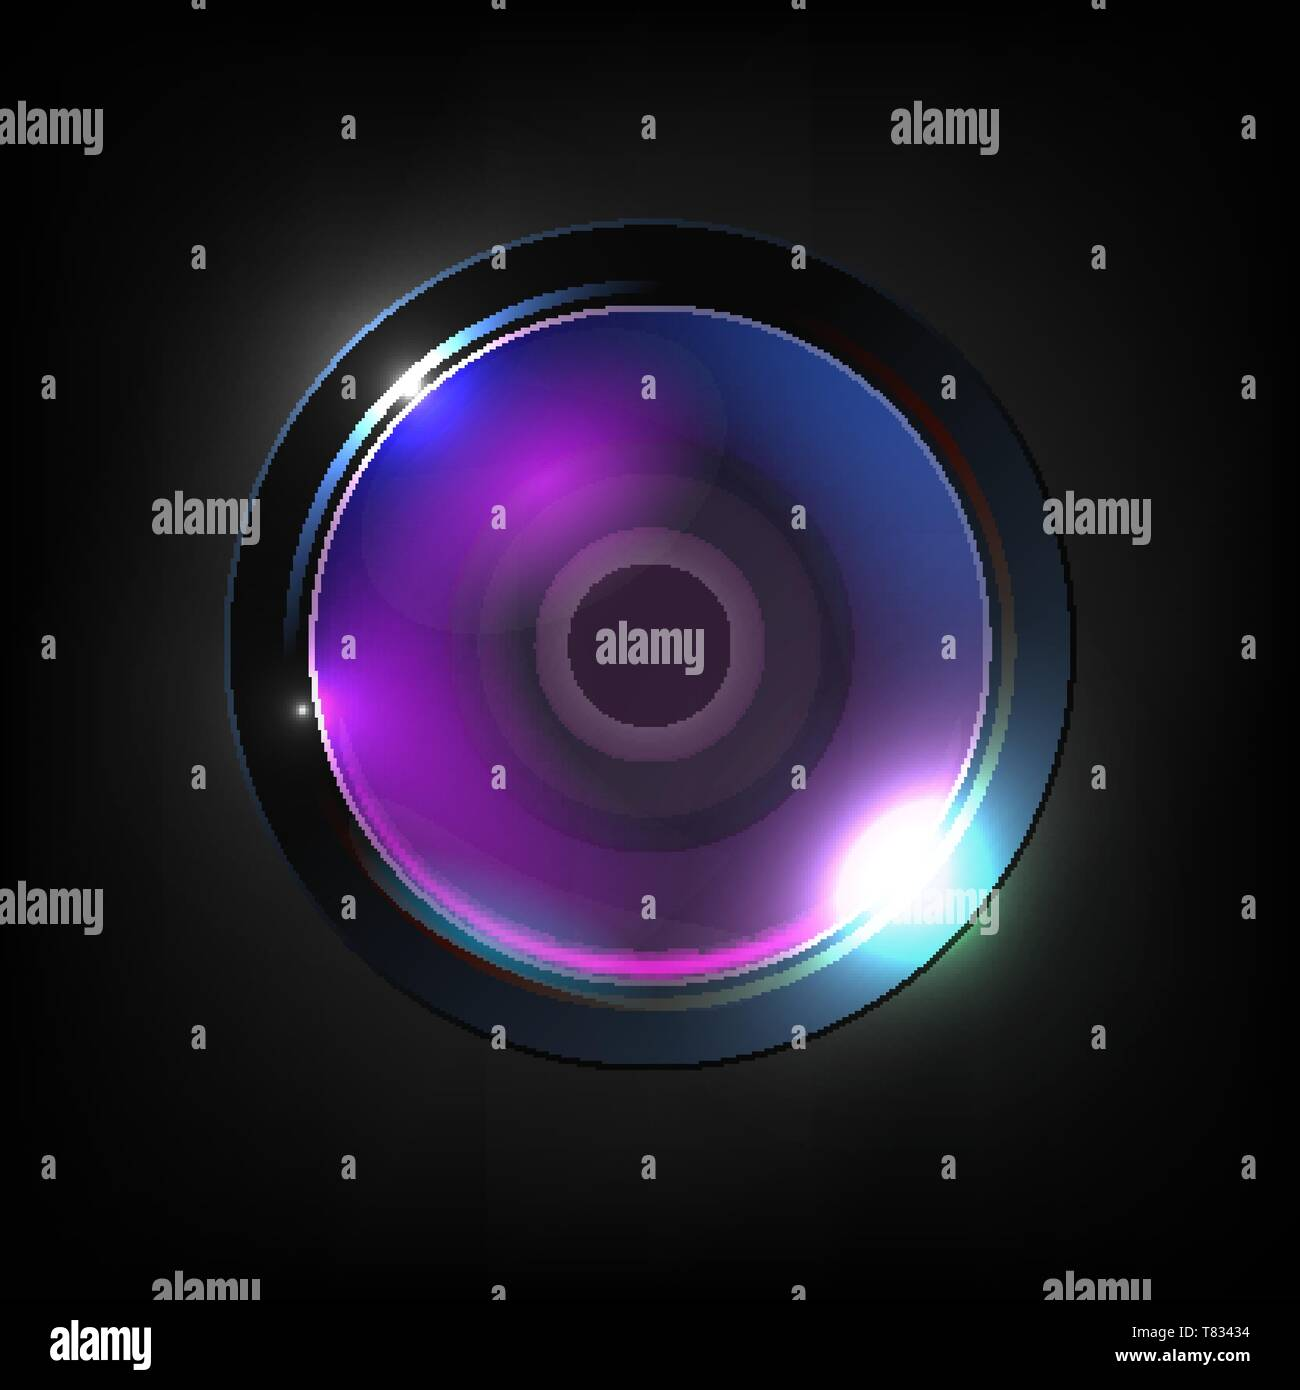 Realistic High Quality Photo Optical Lens Vector. Lens Used For Still Video Camera, Telescope, Microscope And Smartphone Or Other Apparatus. Purple Ph - Stock Image